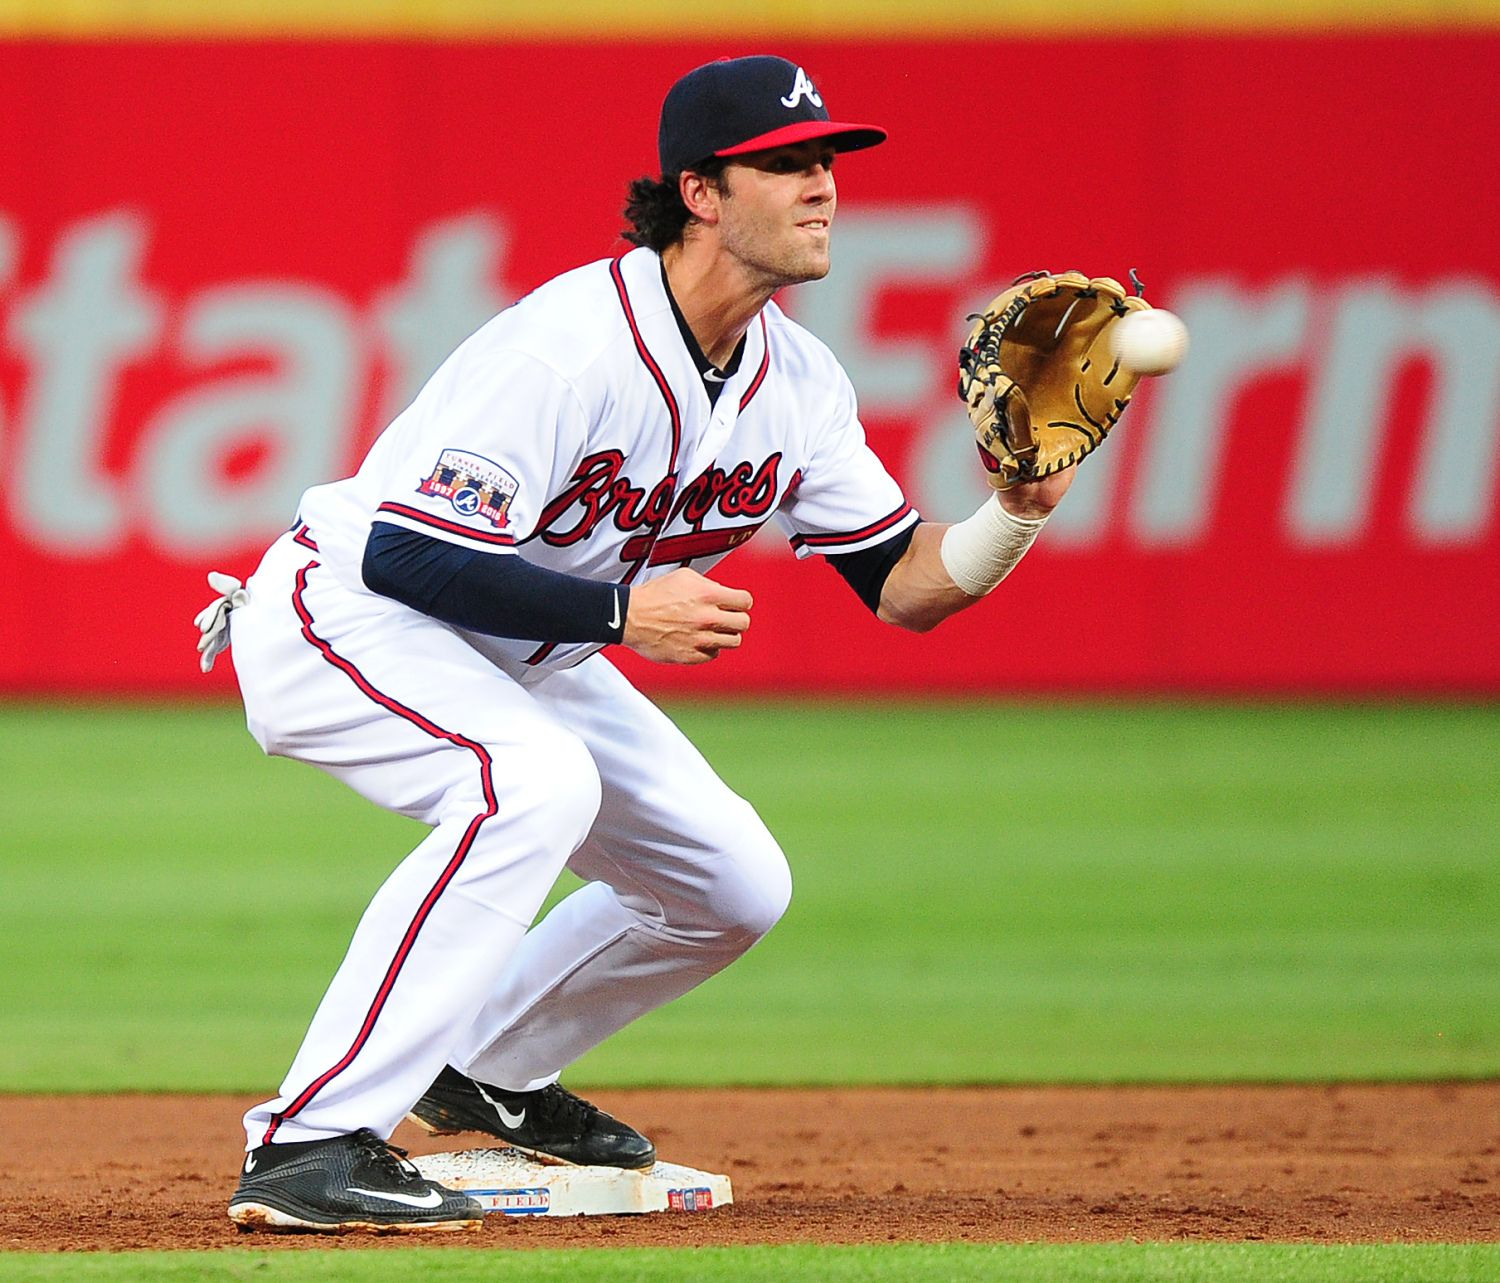 Atlanta Ga August 17 Dansby Swanson 2 Of The Atlanta Braves Takes A Throw At Second Base Against The Minnes Atlanta Braves Minnesota Twins Baseball Braves